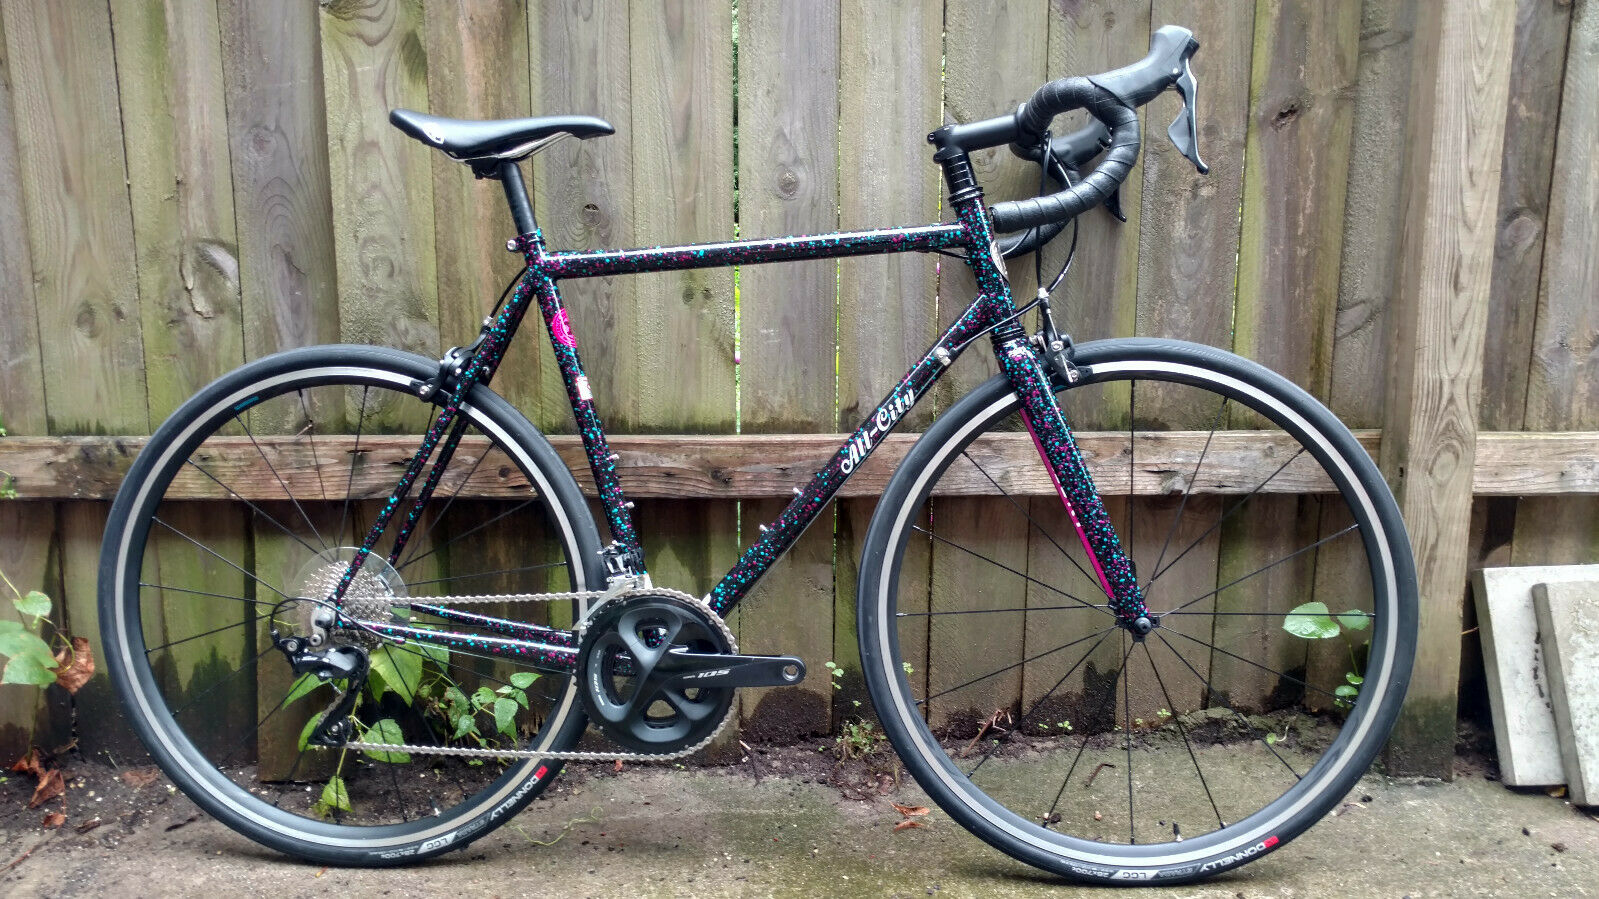 2019 55cm All City Mr Pink 10th Anniv Road Bike Columbus Zona Steel Shimano 105 (New other (see details) - 2299 USD)